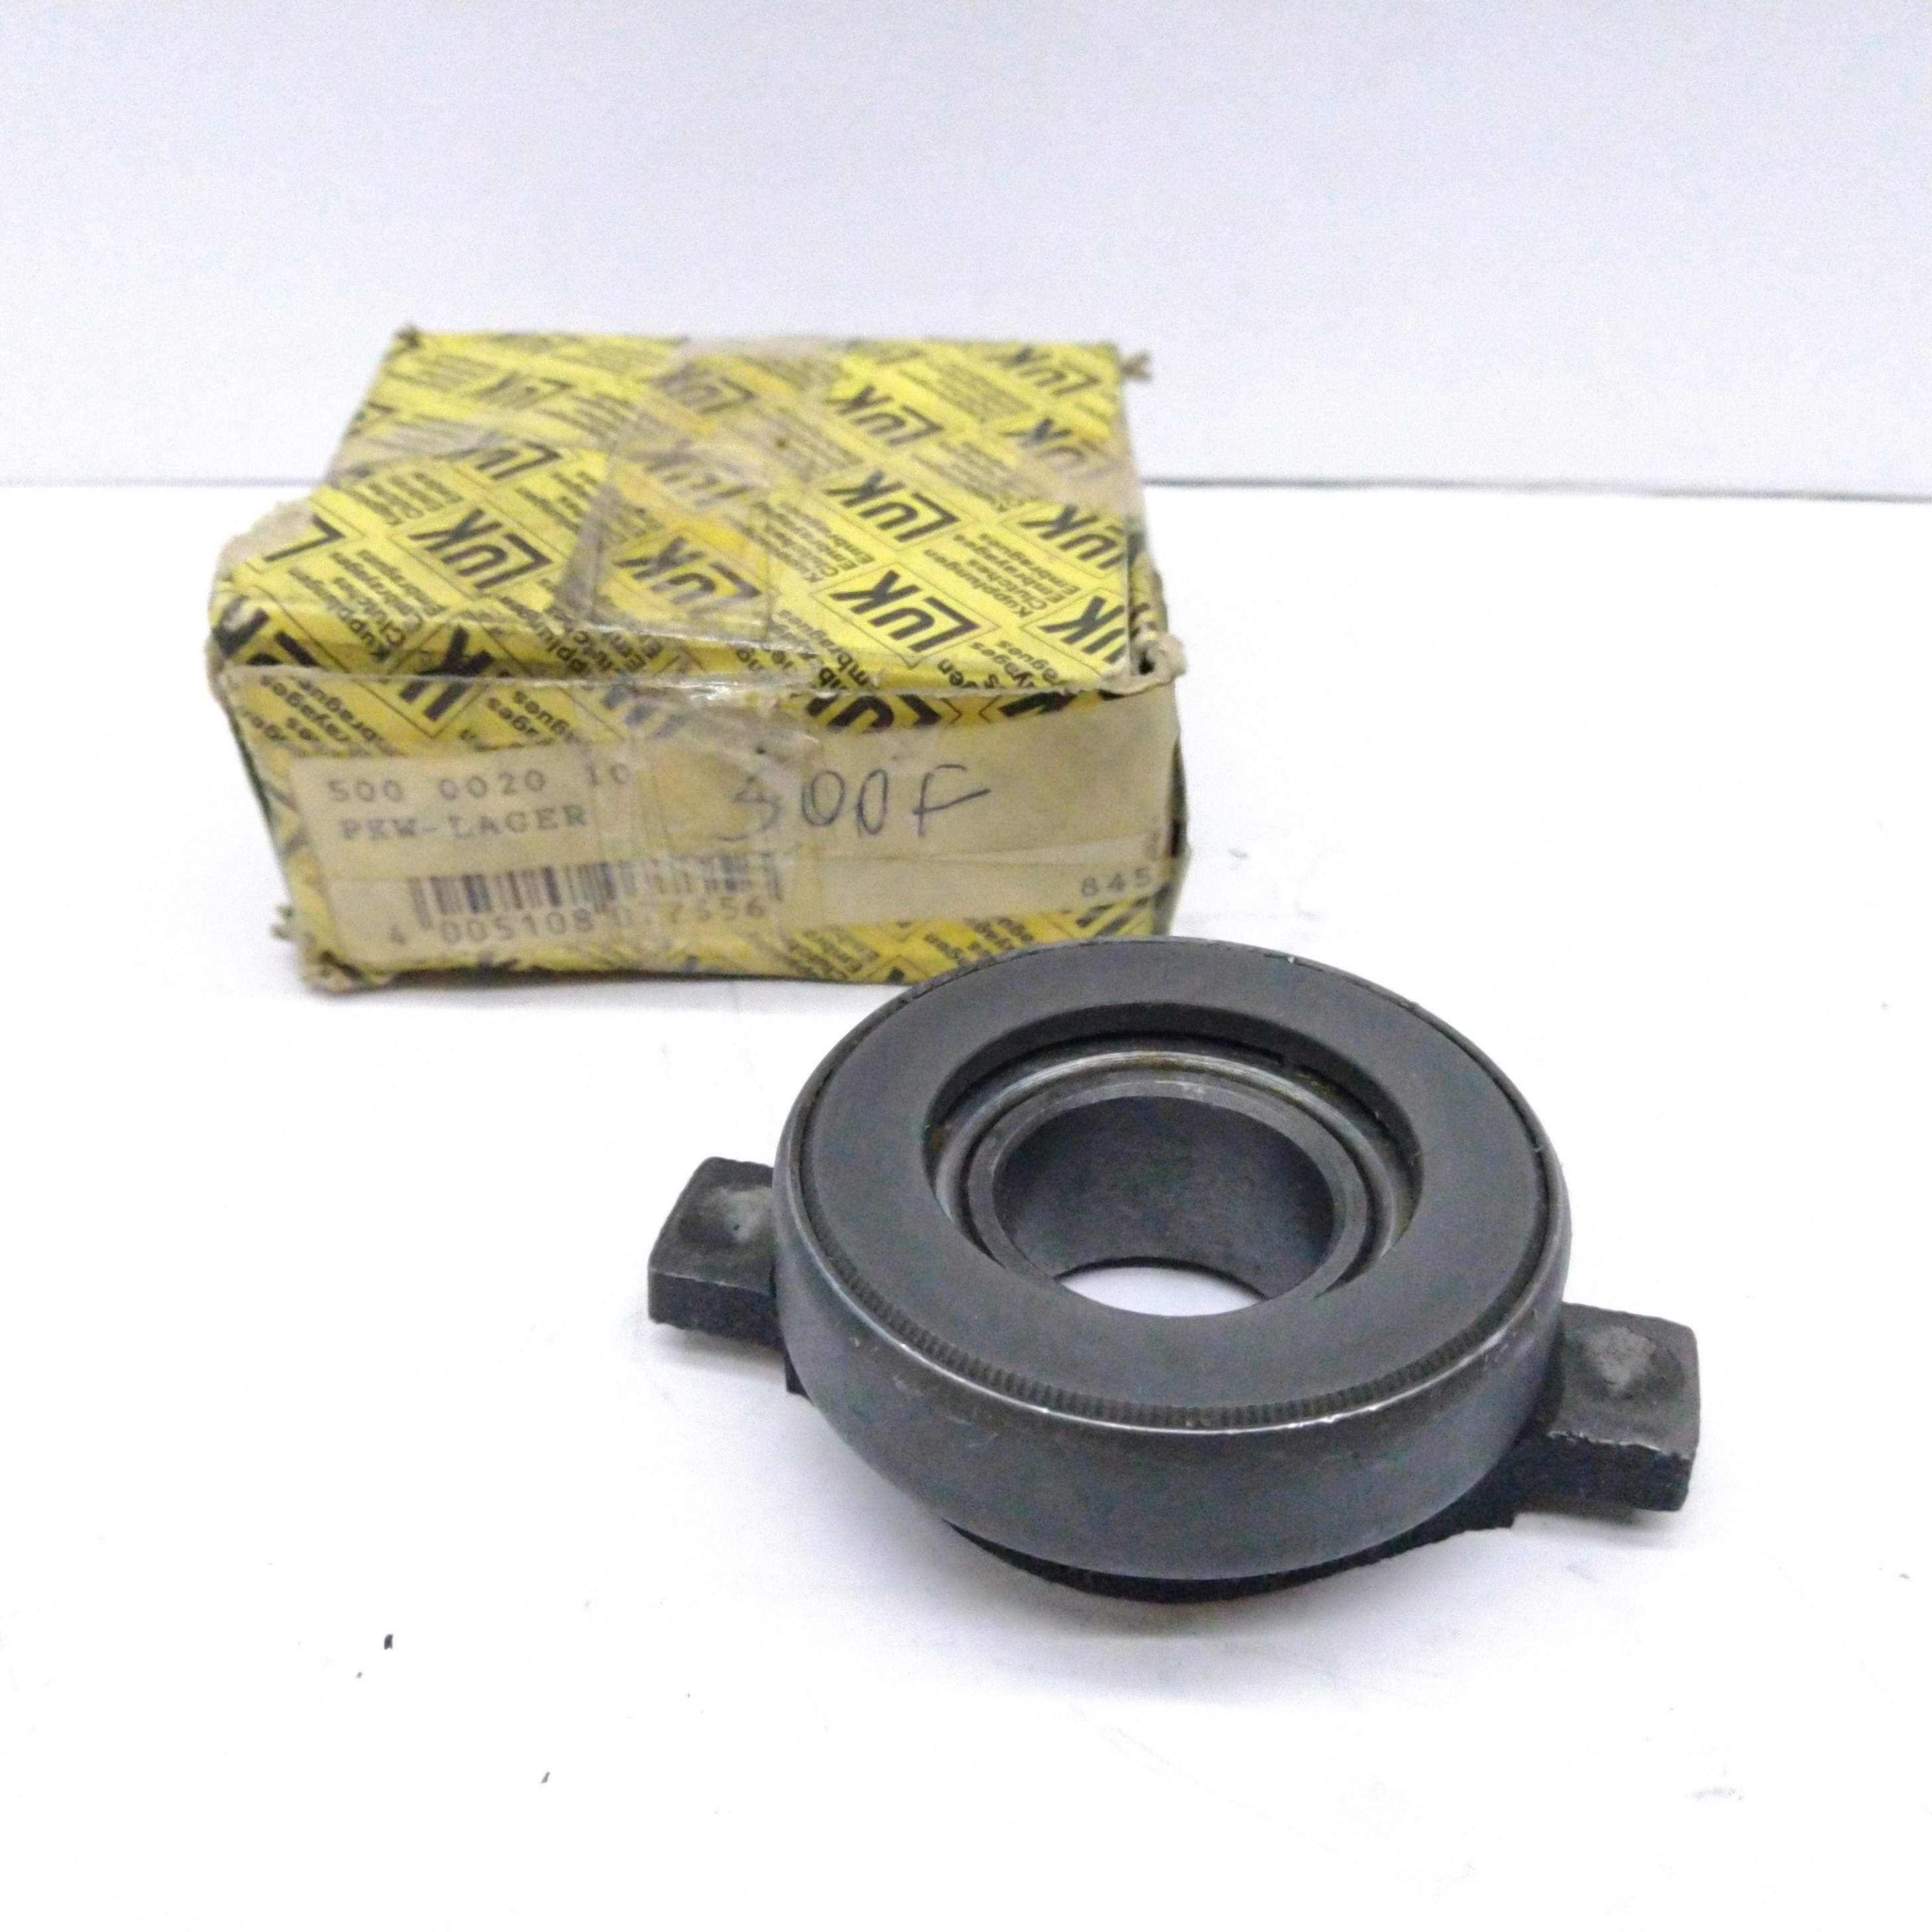 THRUST RELEASE CLUTCH FIAT 500 F - L LUK FOR 4333358